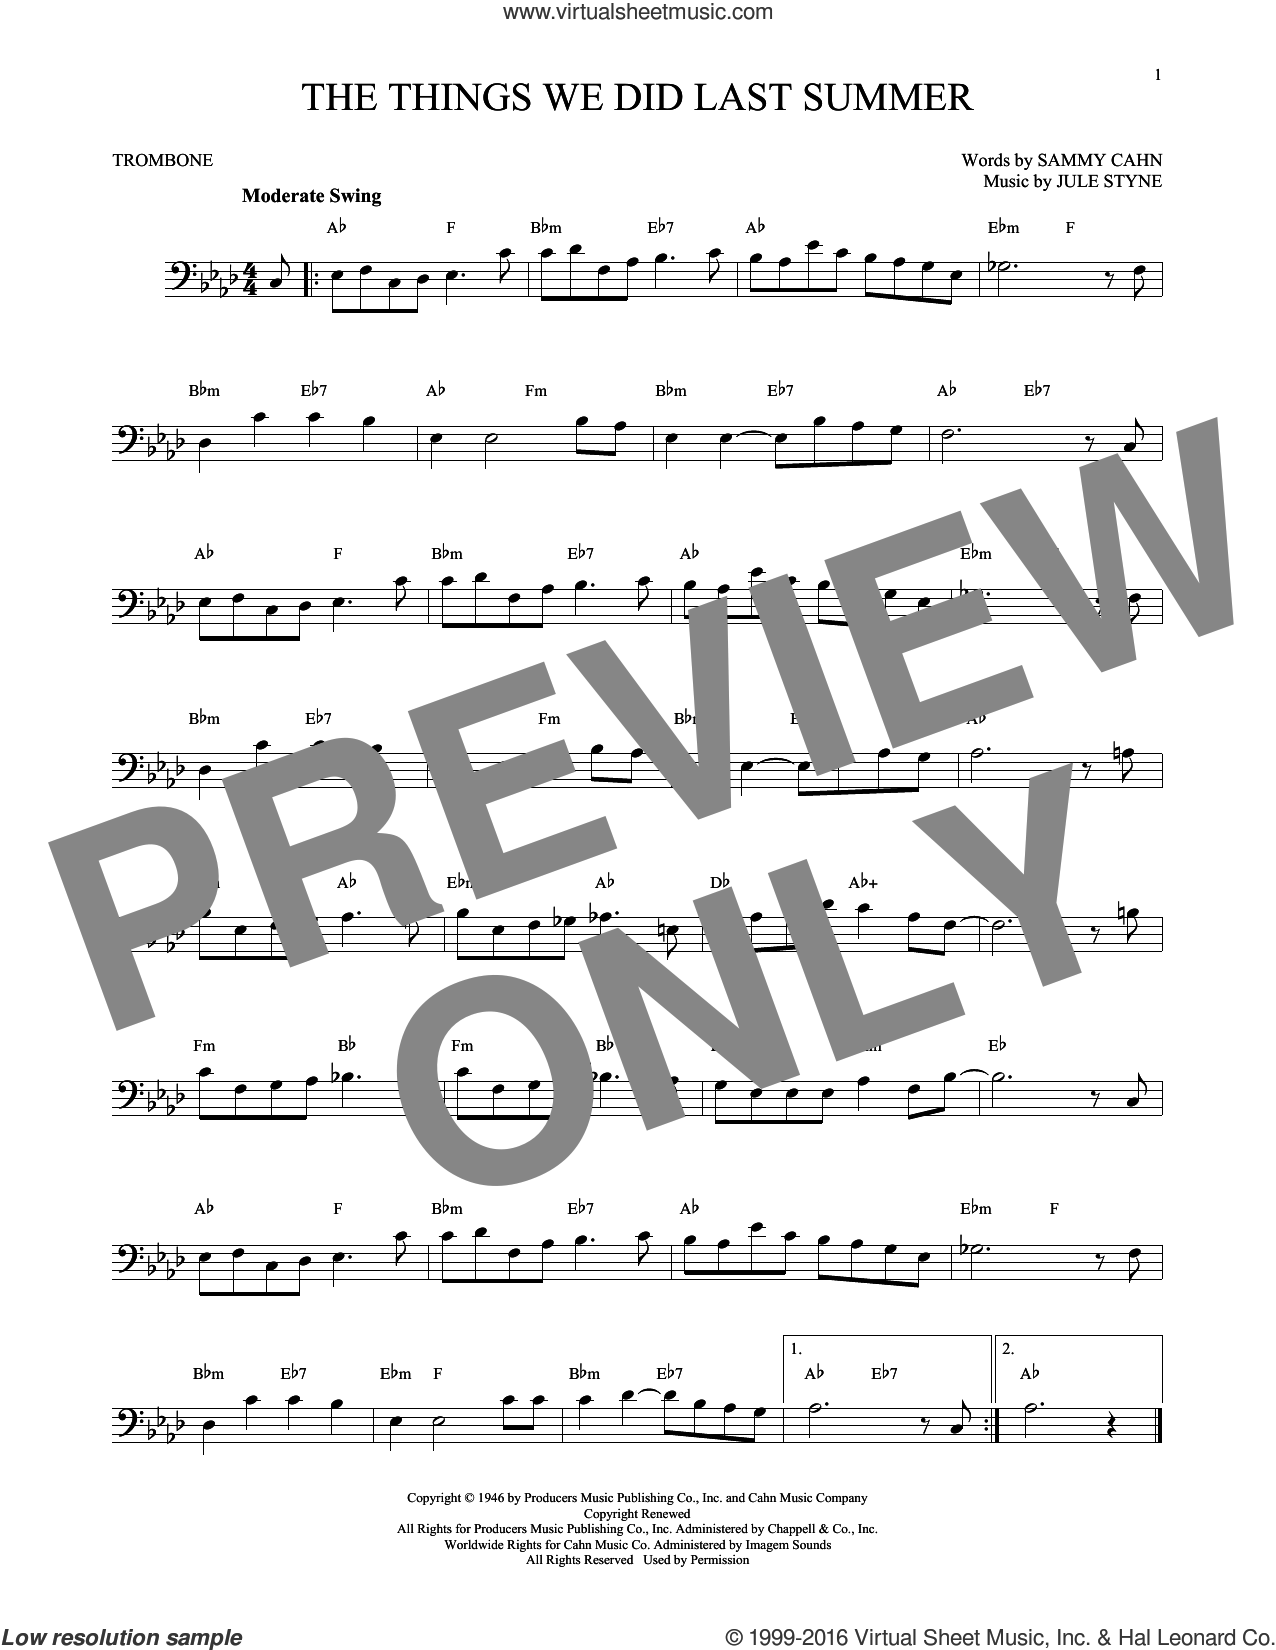 The Things We Did Last Summer sheet music for trombone solo by Sammy Cahn and Jule Styne, intermediate skill level